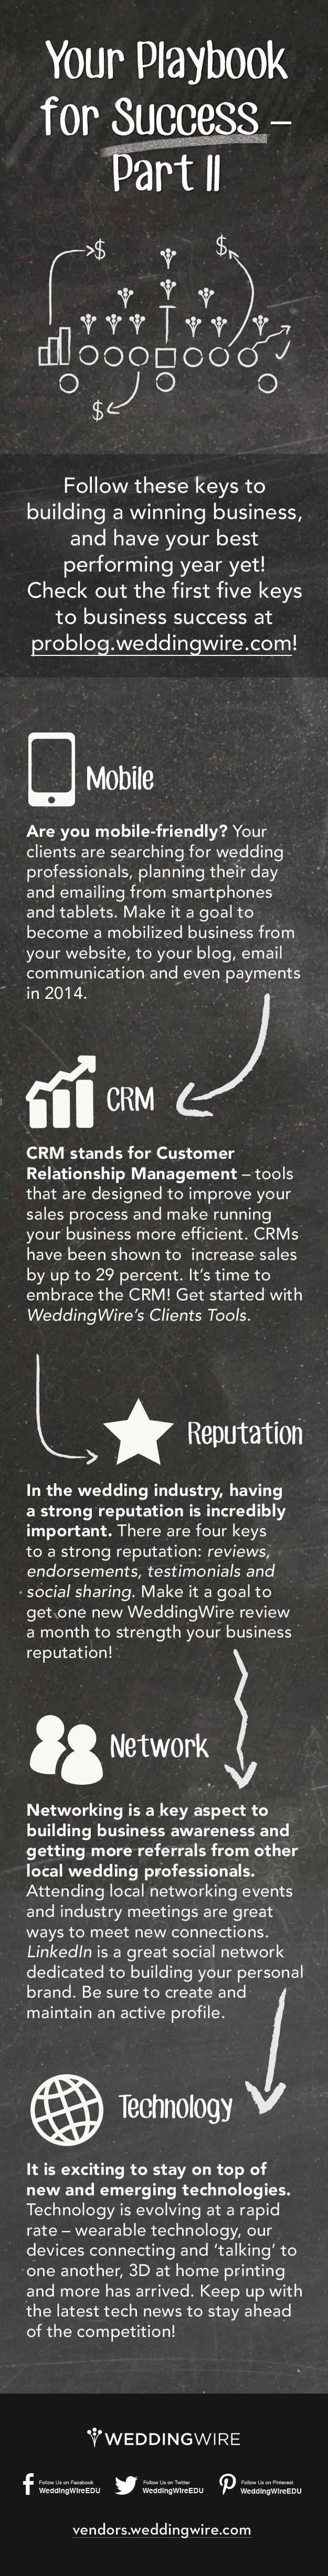 34 best All Things WeddingWire images on Pinterest   Info graphics ...